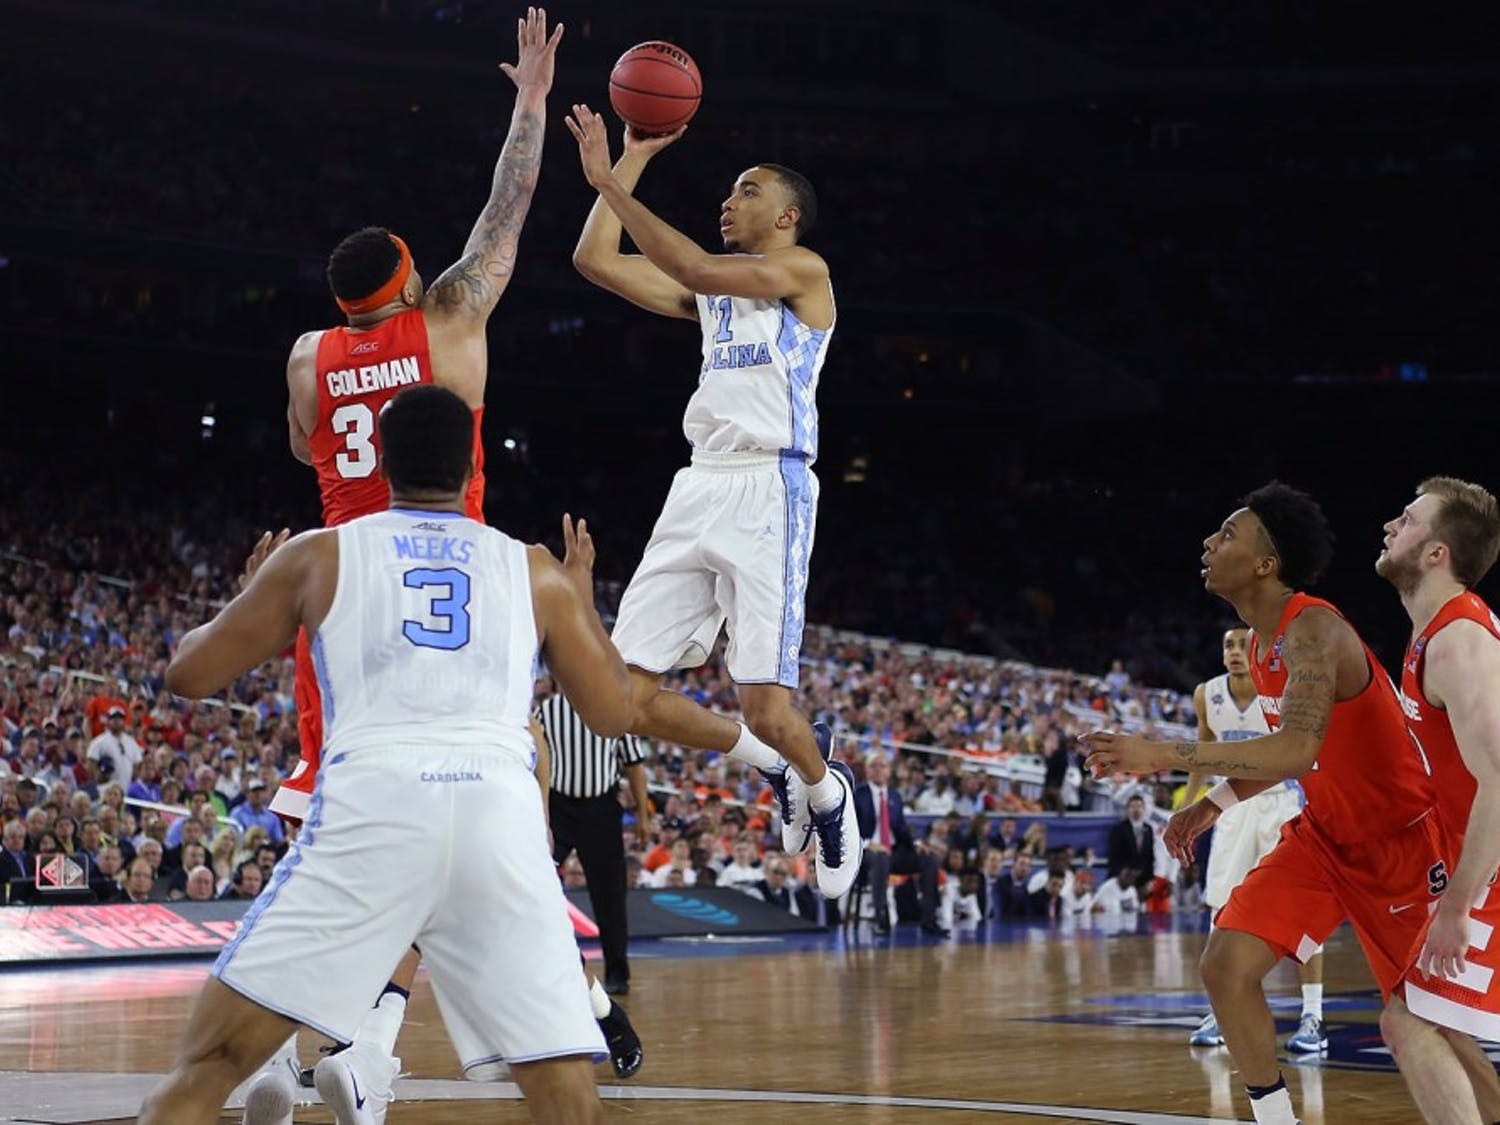 Former North Carolina forward Brice Johnson (11) takes a shot against Syracuse on April 2, 2016, in the Final Four in Houston, Texas.